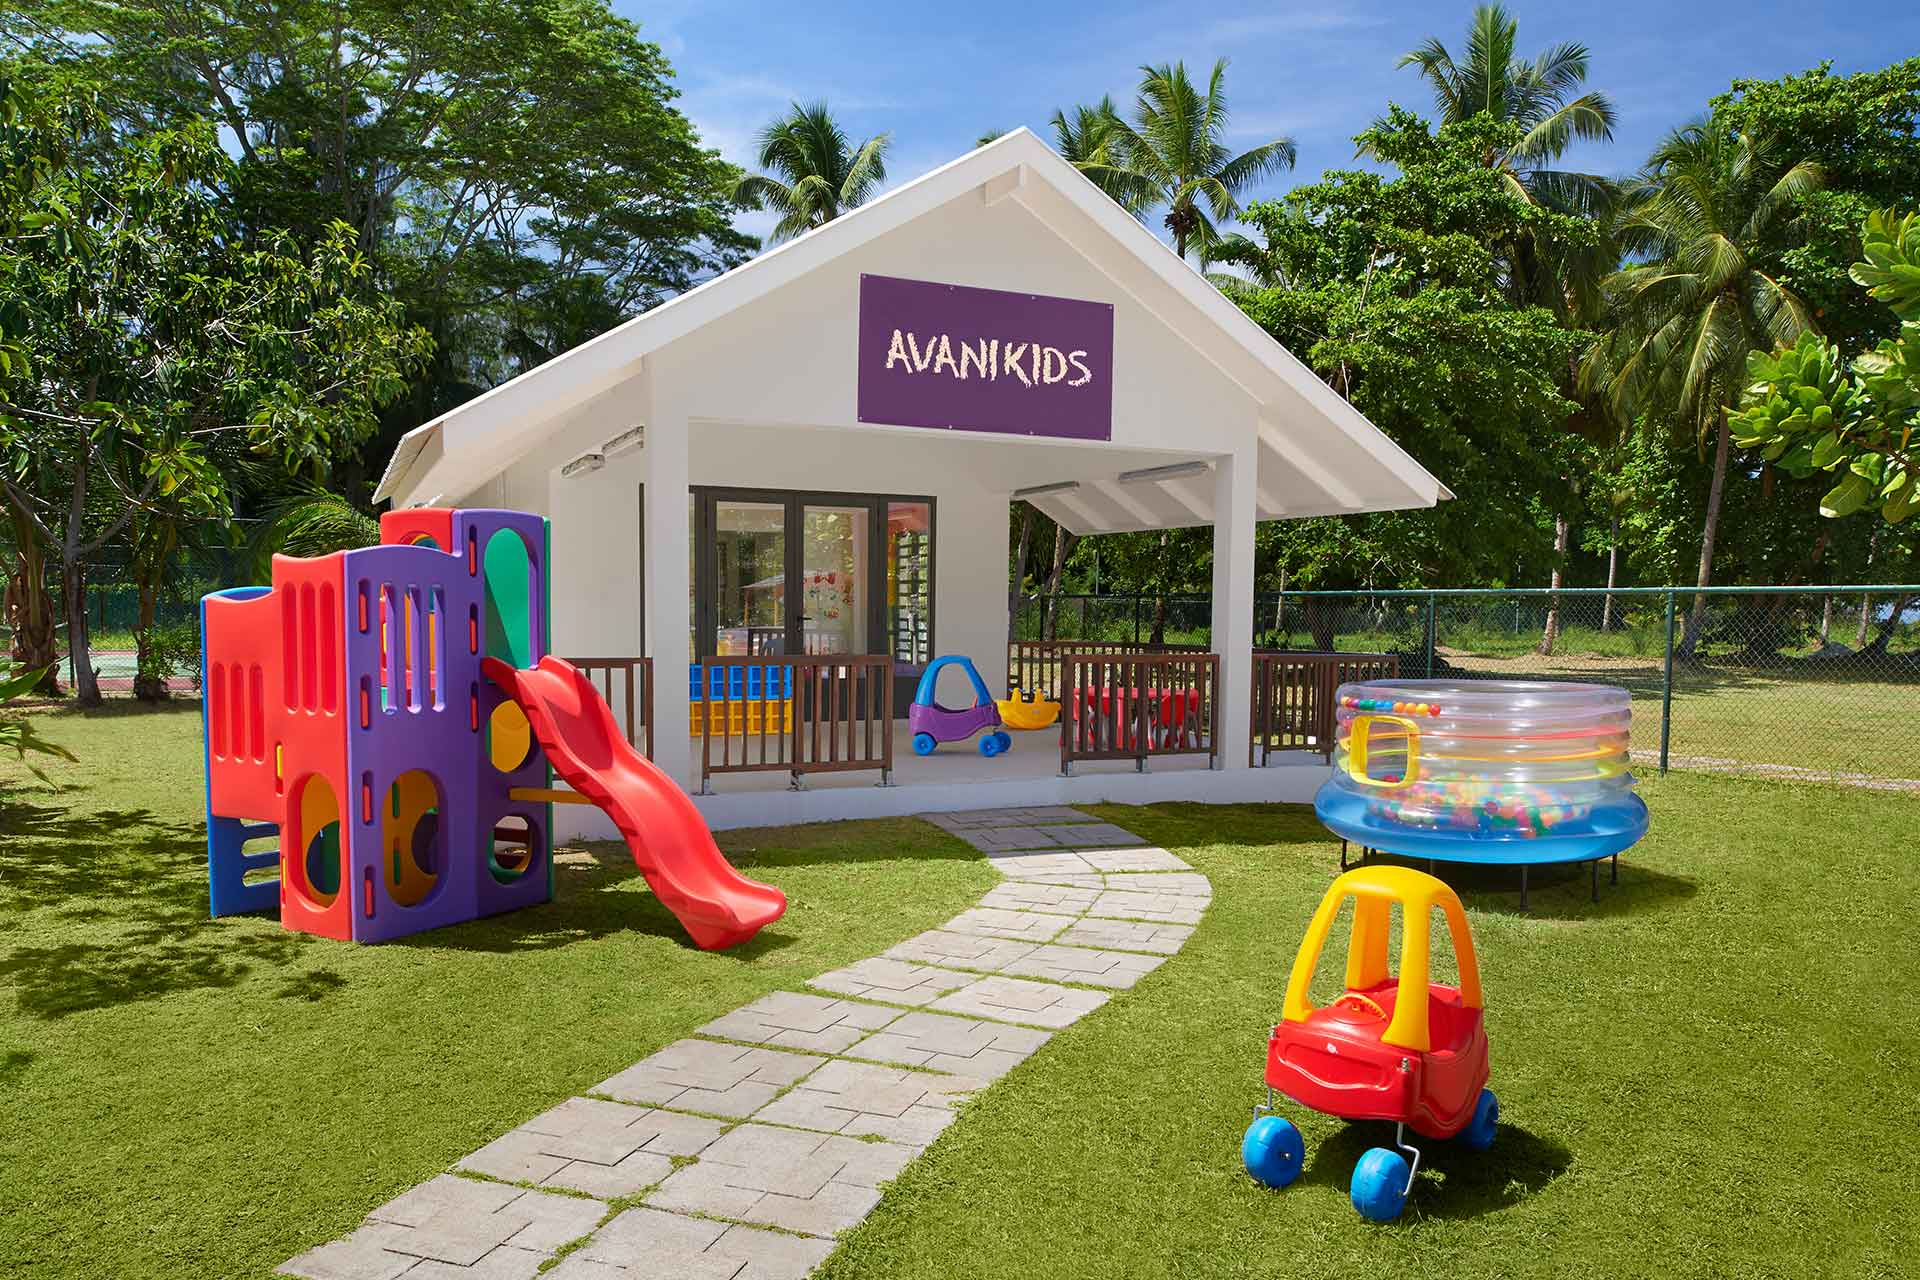 Seychelles hotel images of AVANI Kids Club